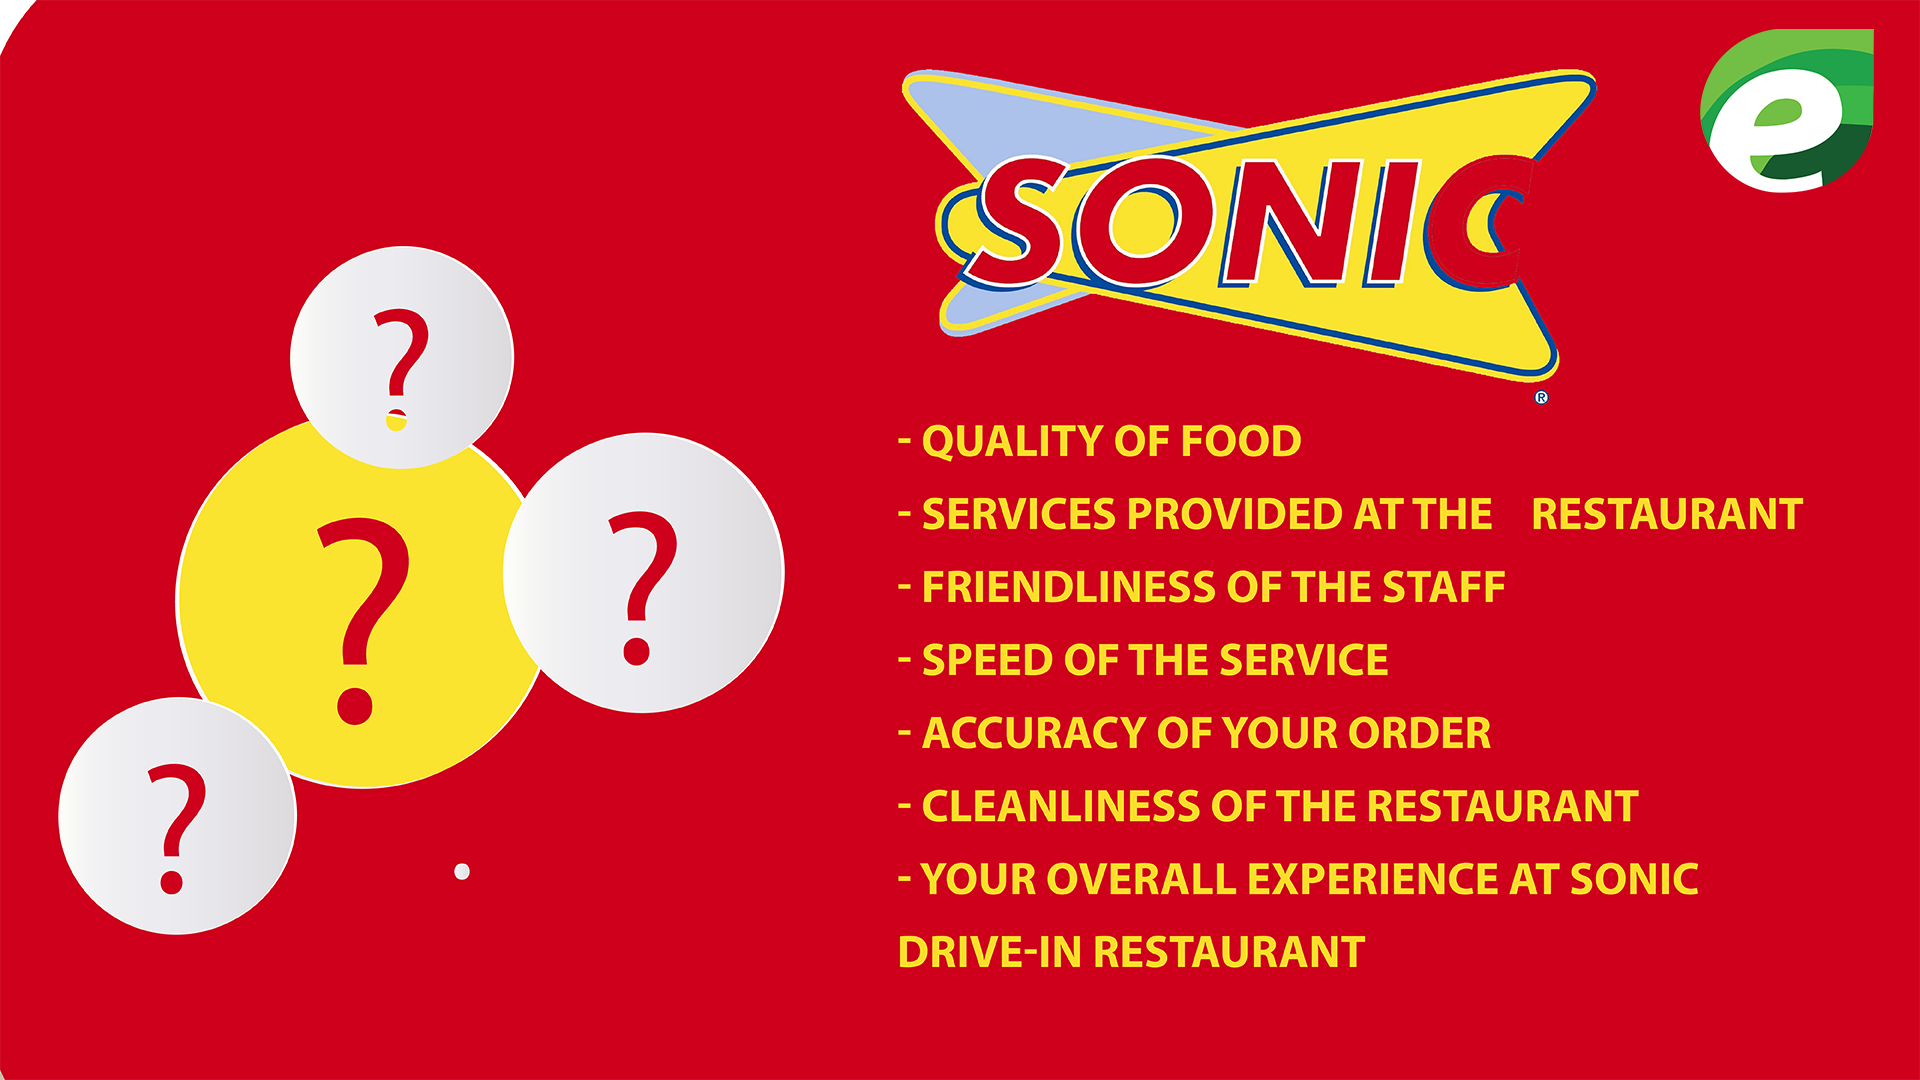 Talk To Sonic - Questions Asked in the survey